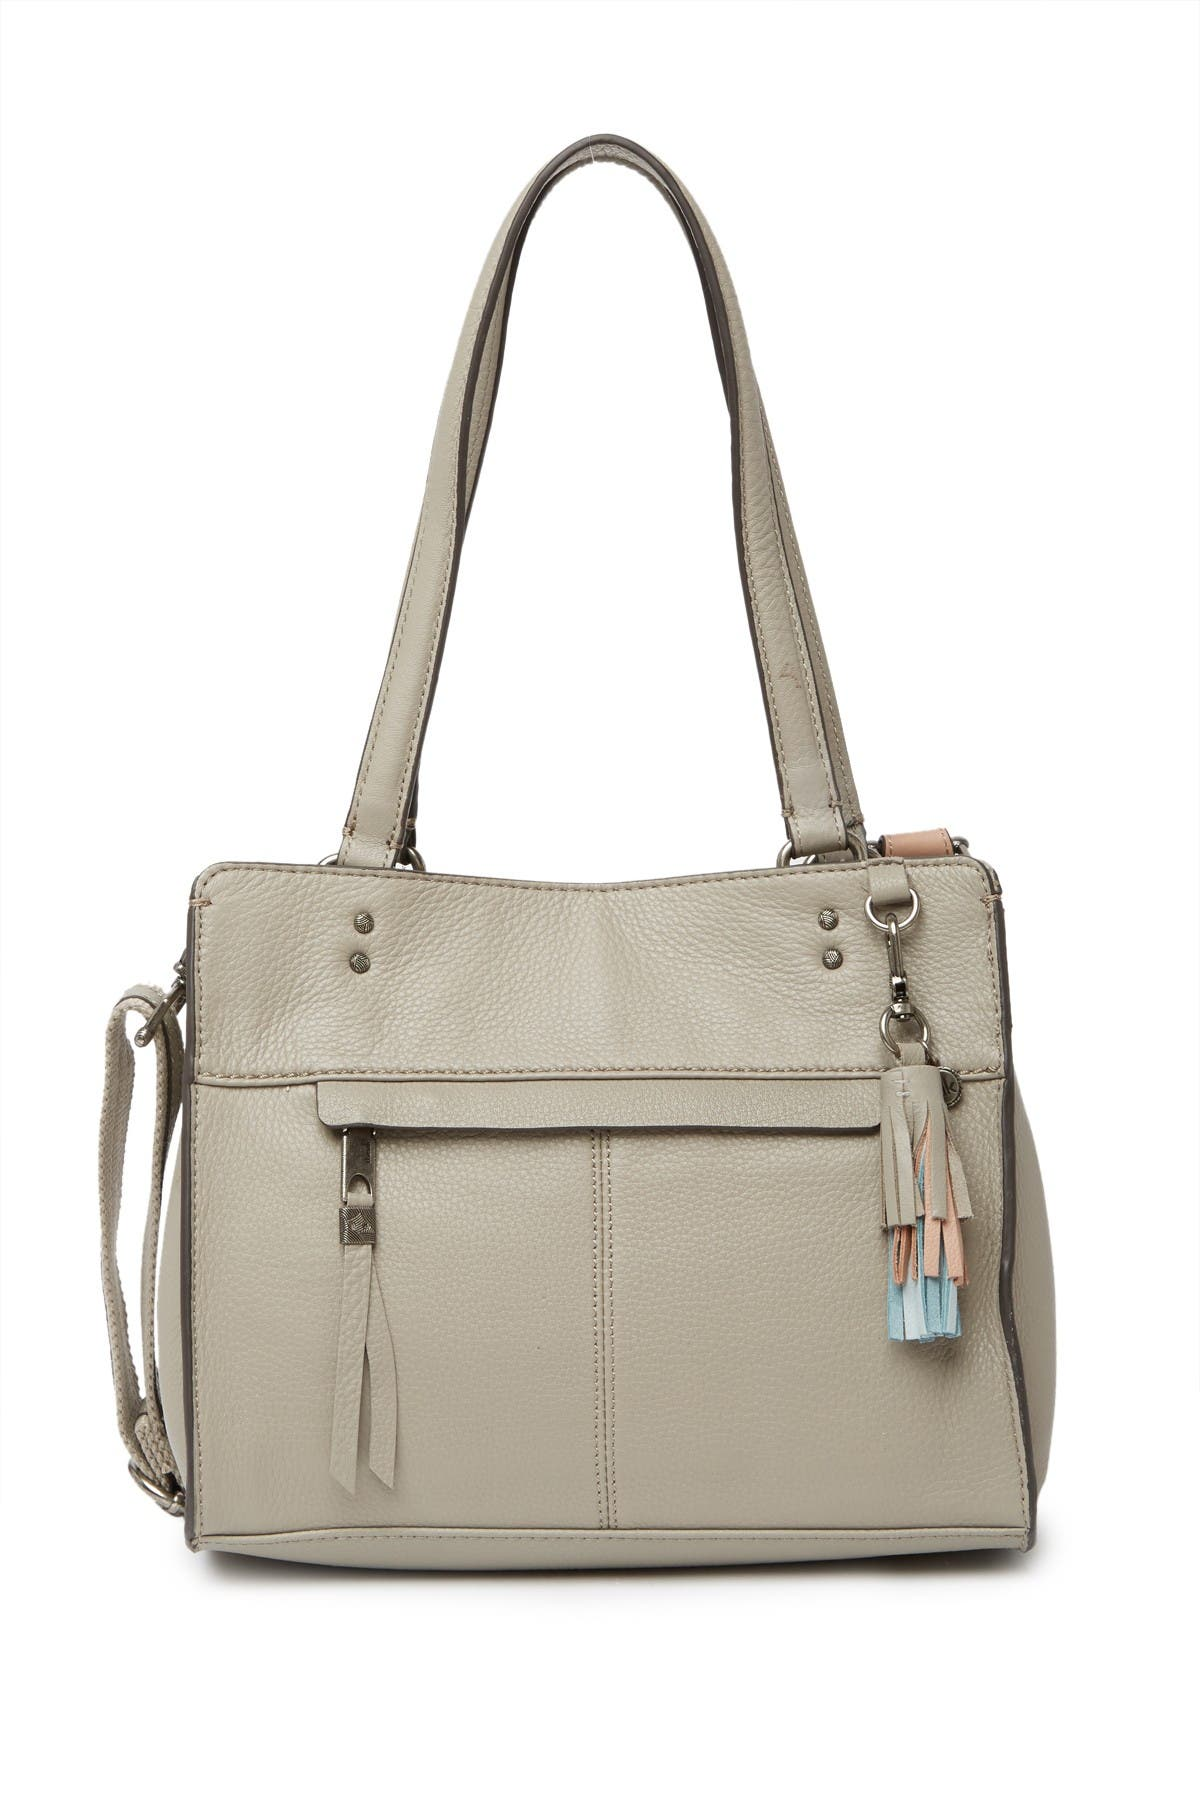 Image of The Sak Alameda Leather Satchel